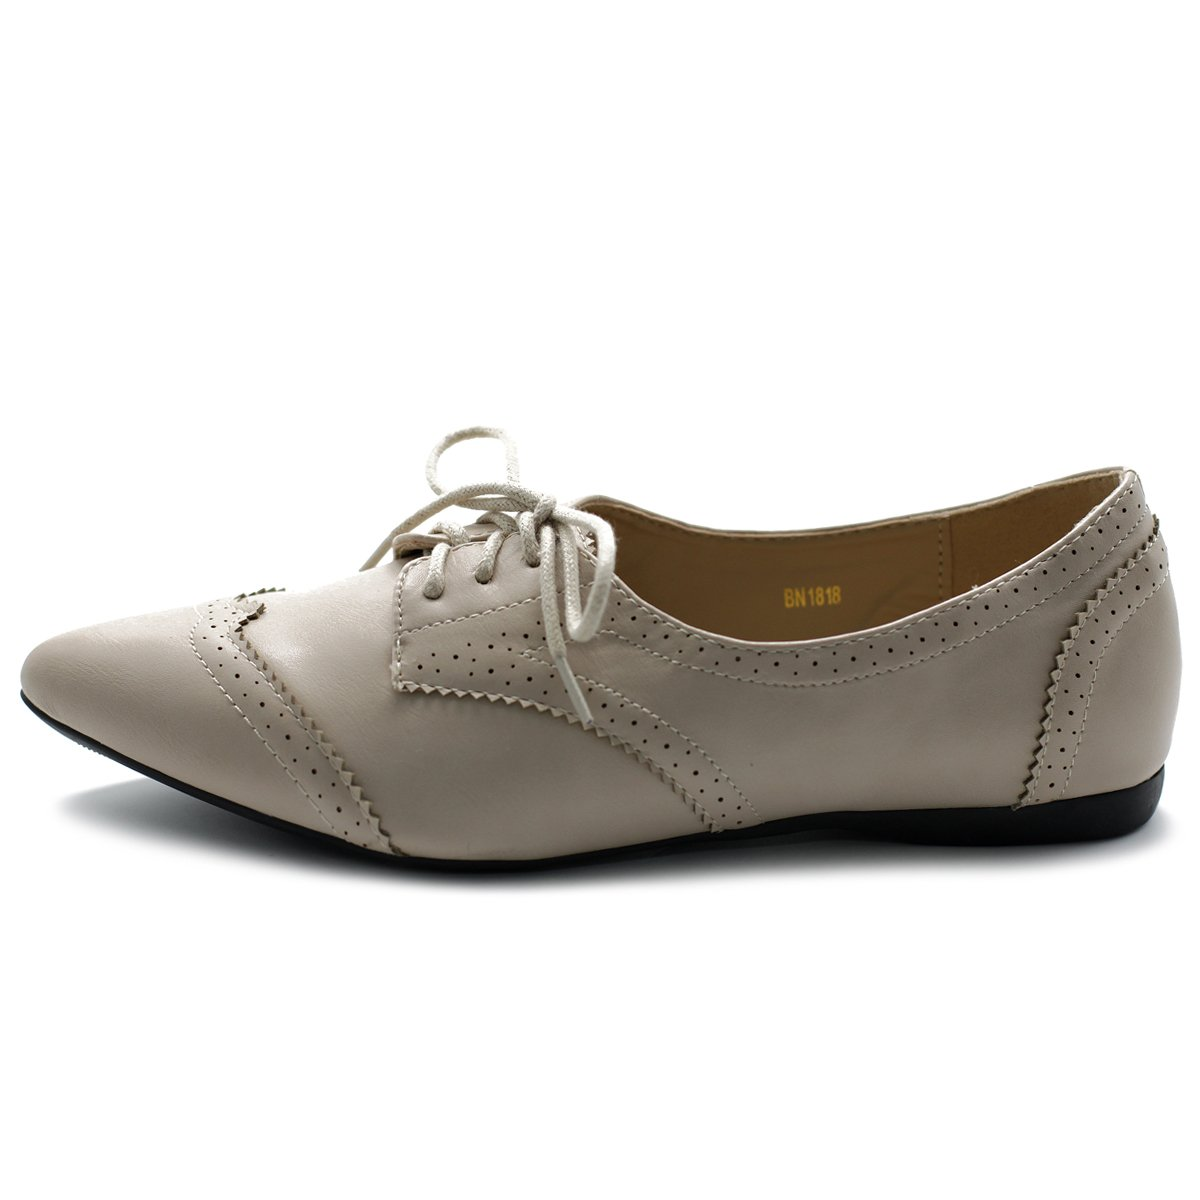 Ollio Women's Ballet Shoe Flat Enamel Pointed Toe Oxford M1818 (9 B(M) US, Beige) by Ollio (Image #2)